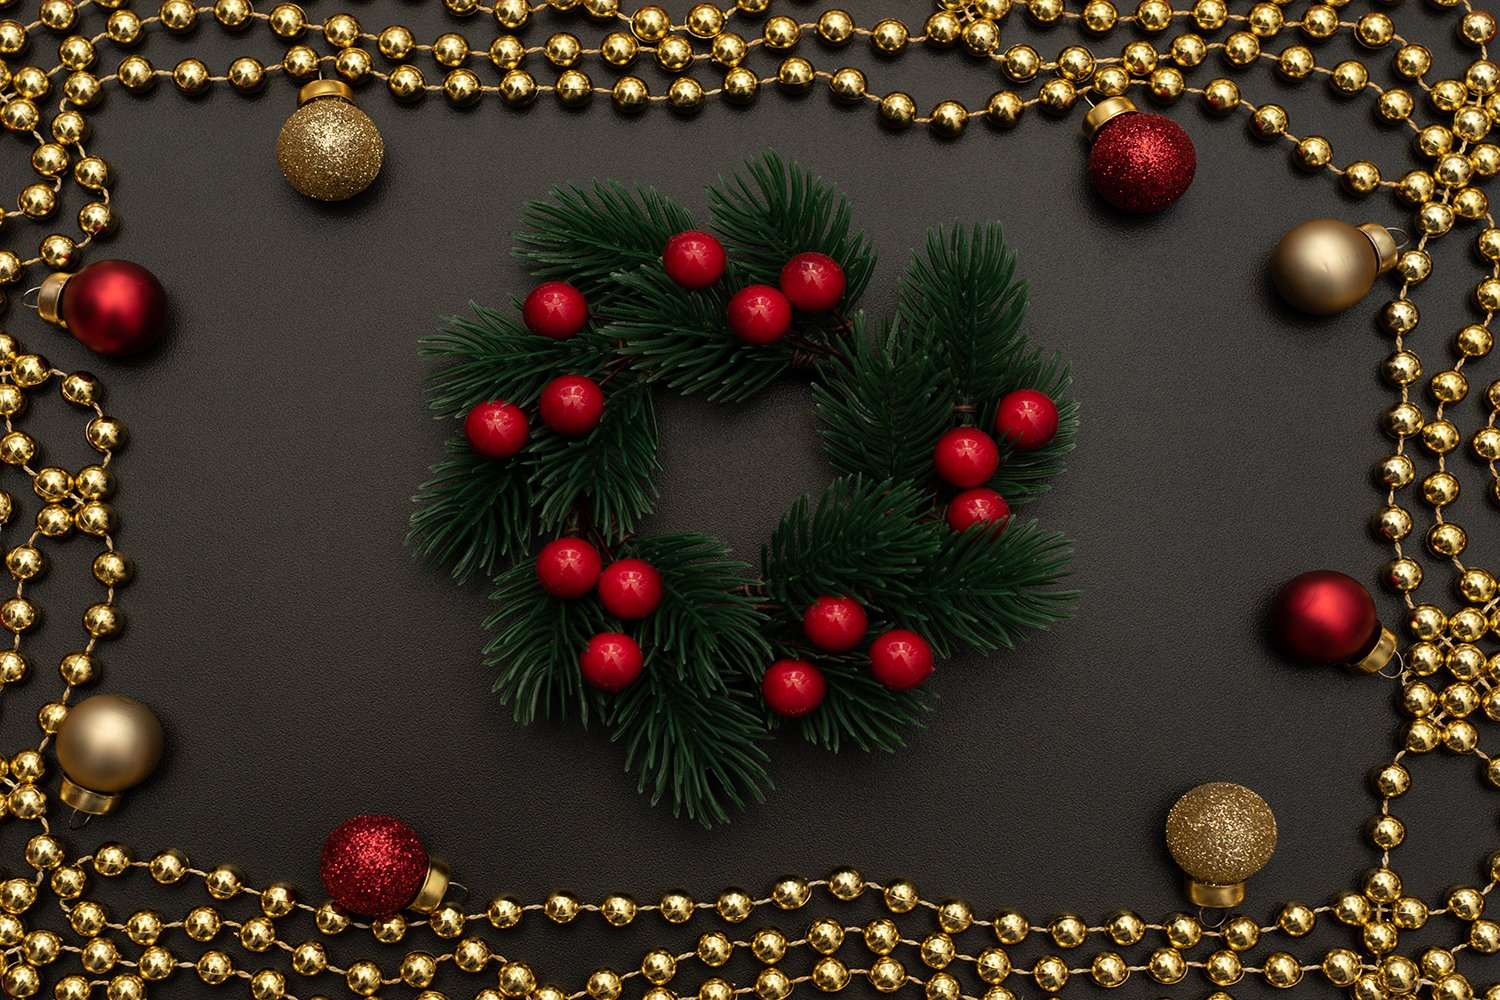 Christmas wreath with berries, golden beads example image 1